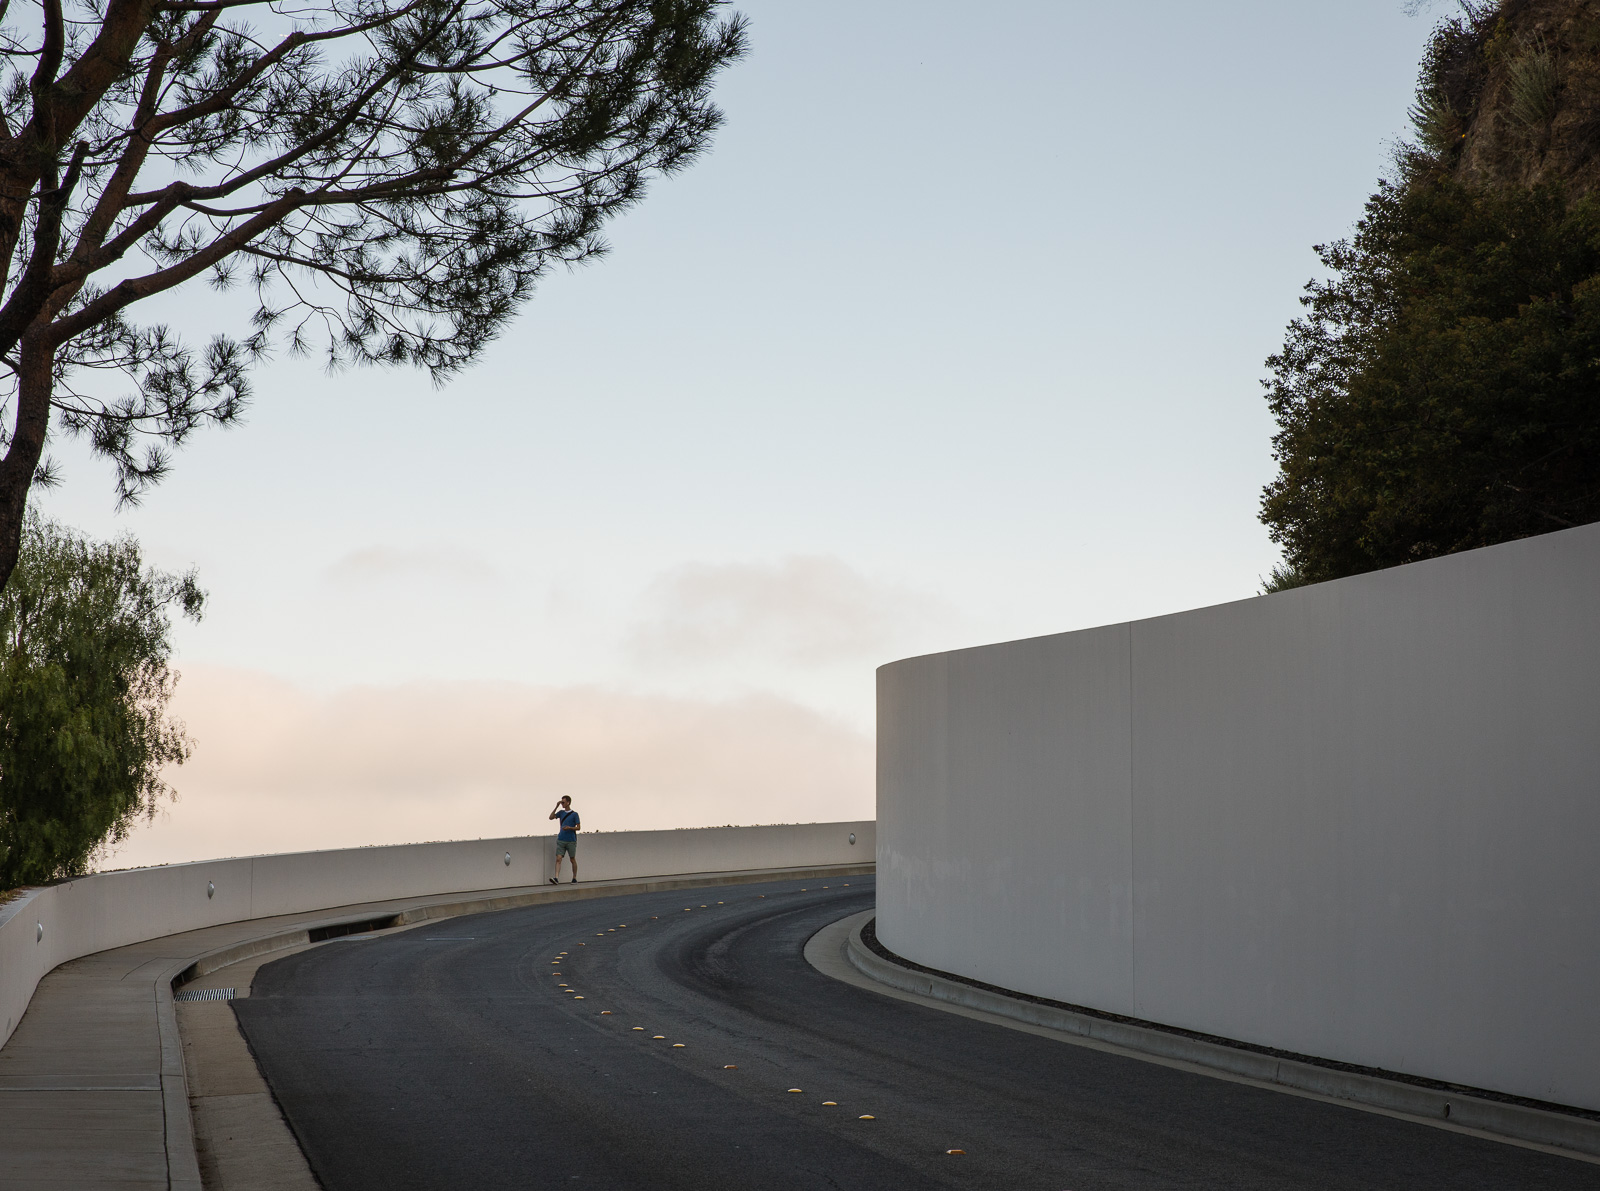 The road to the Getty Museum designed by Richard Meier